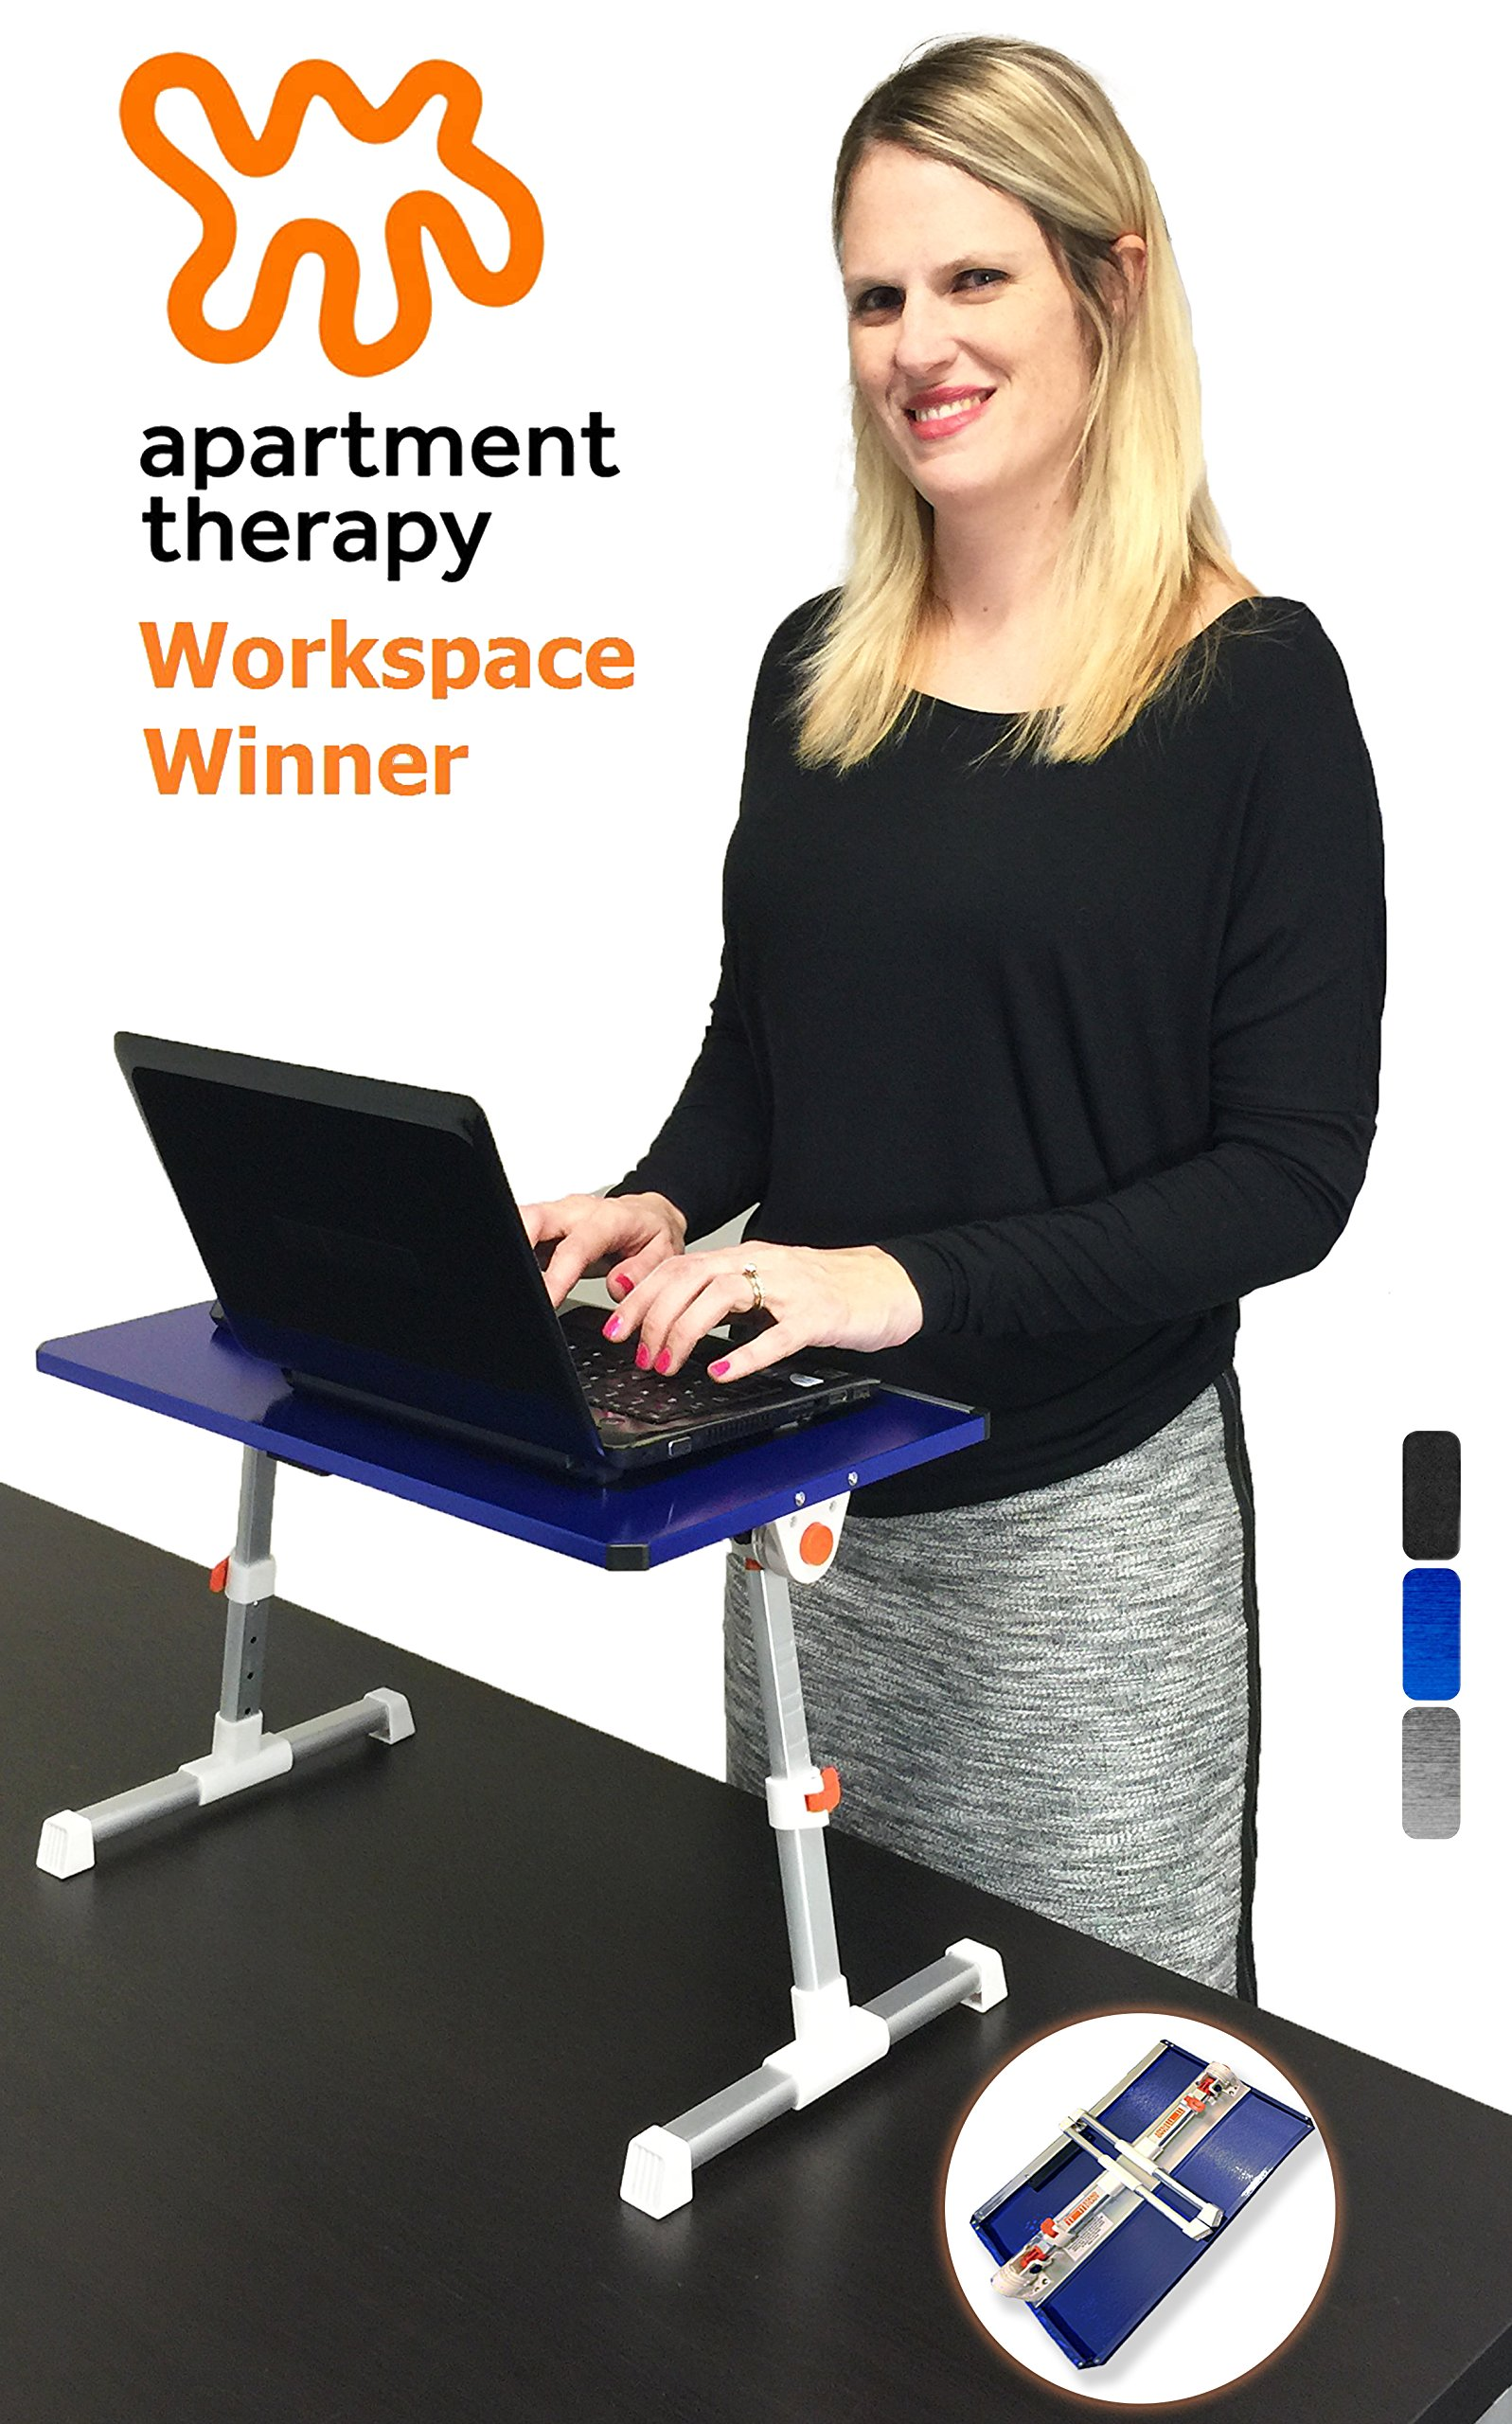 Stand Steady Traveler Folding Portable Standing Desk, Height Adjustable Laptop Bed Table, Adjustable Monitor Stand, or Children's Floor Table. Multi-functional. Apartment Therapy Award Winner! (Blue)